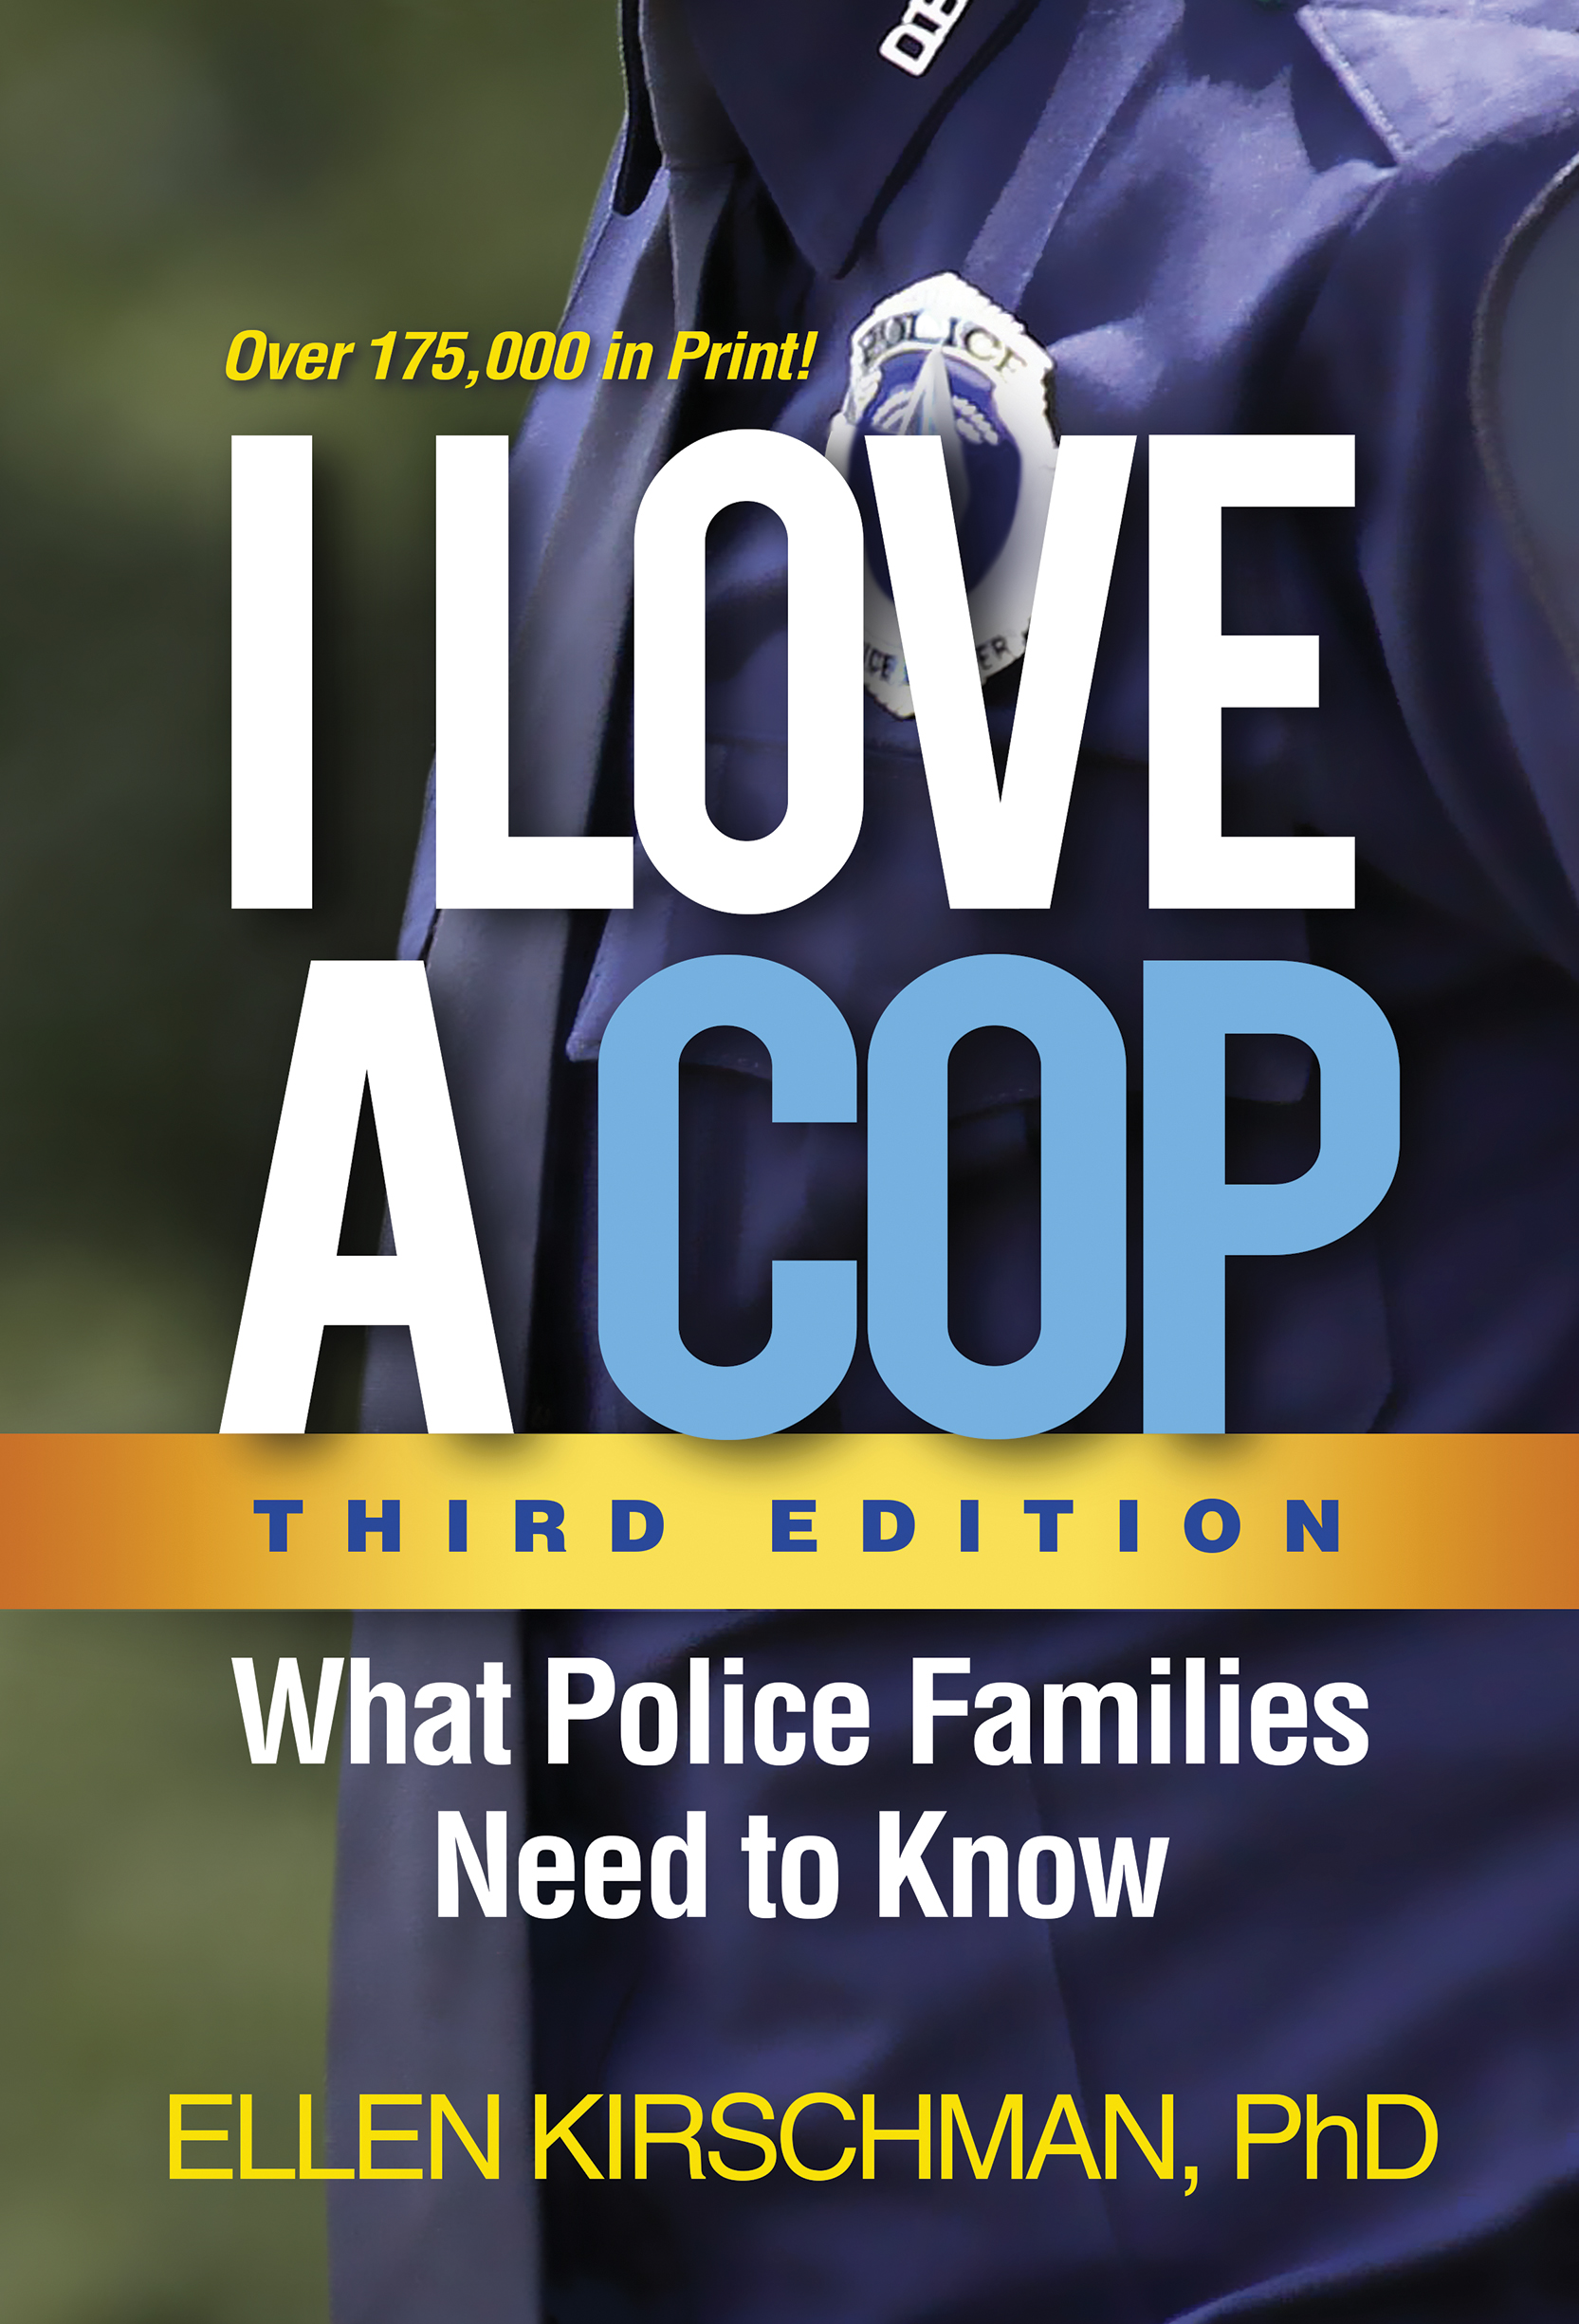 I Love a Cop, Third Edition: What Police Families Need to Know book cover